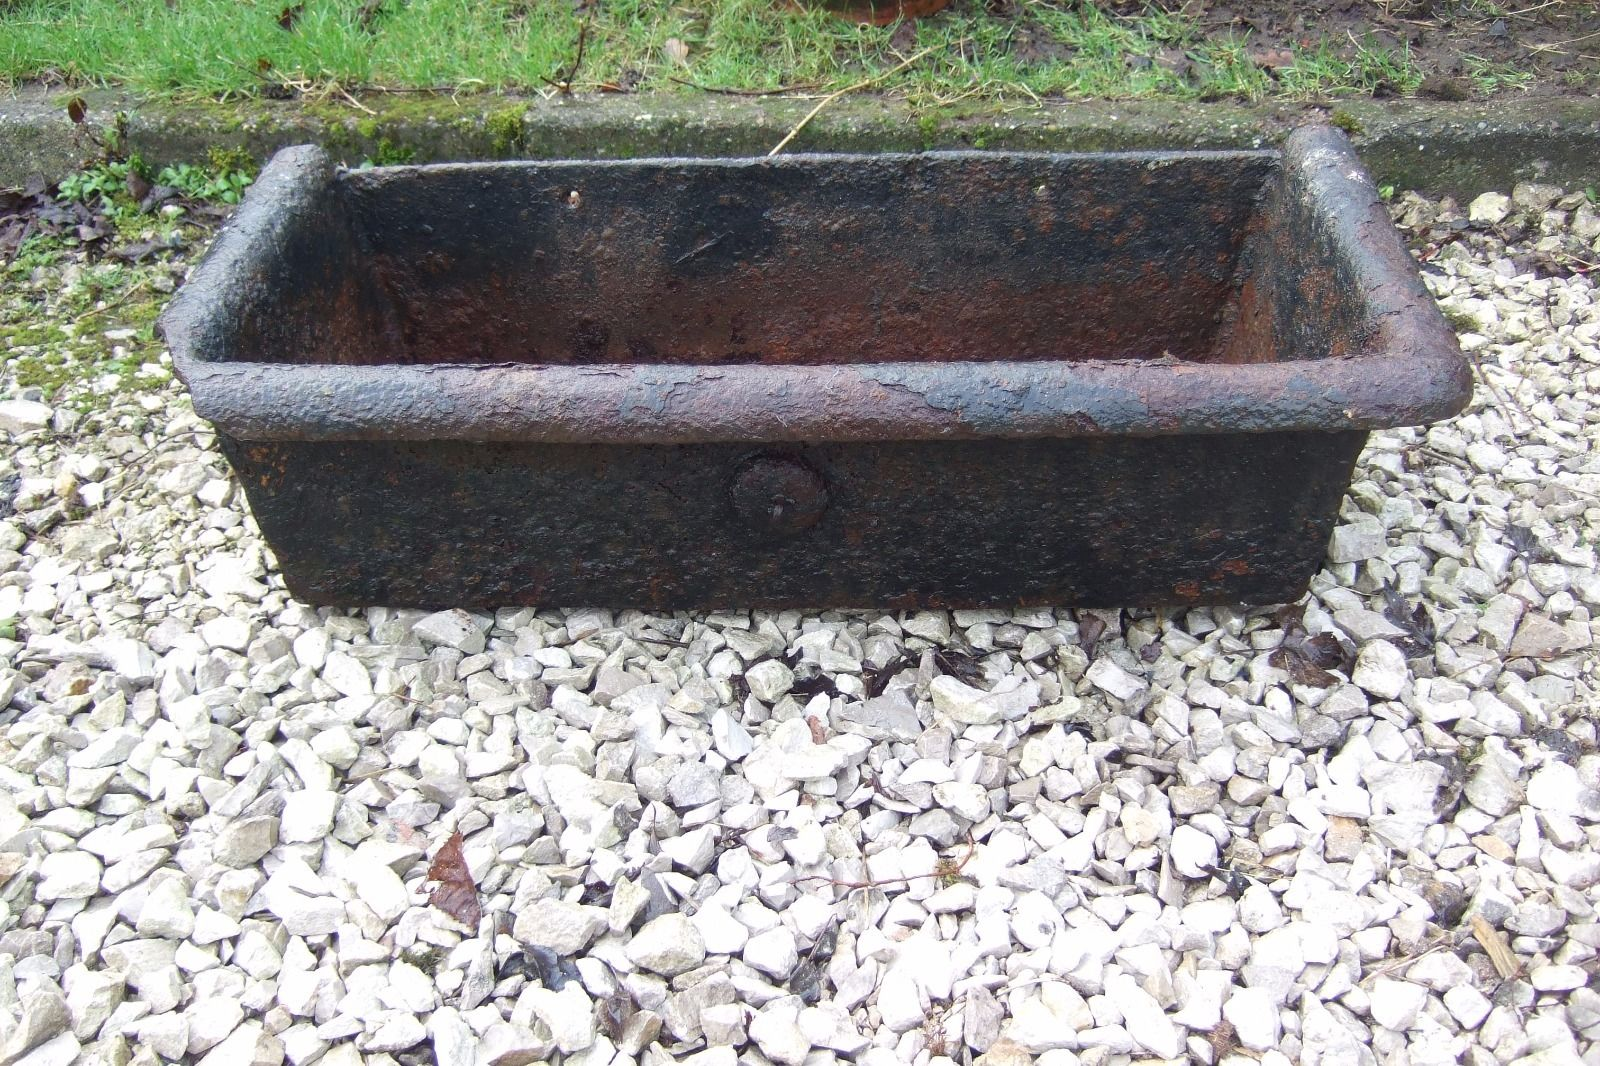 Cast iron water trough suitable for use as garden planter or water feature